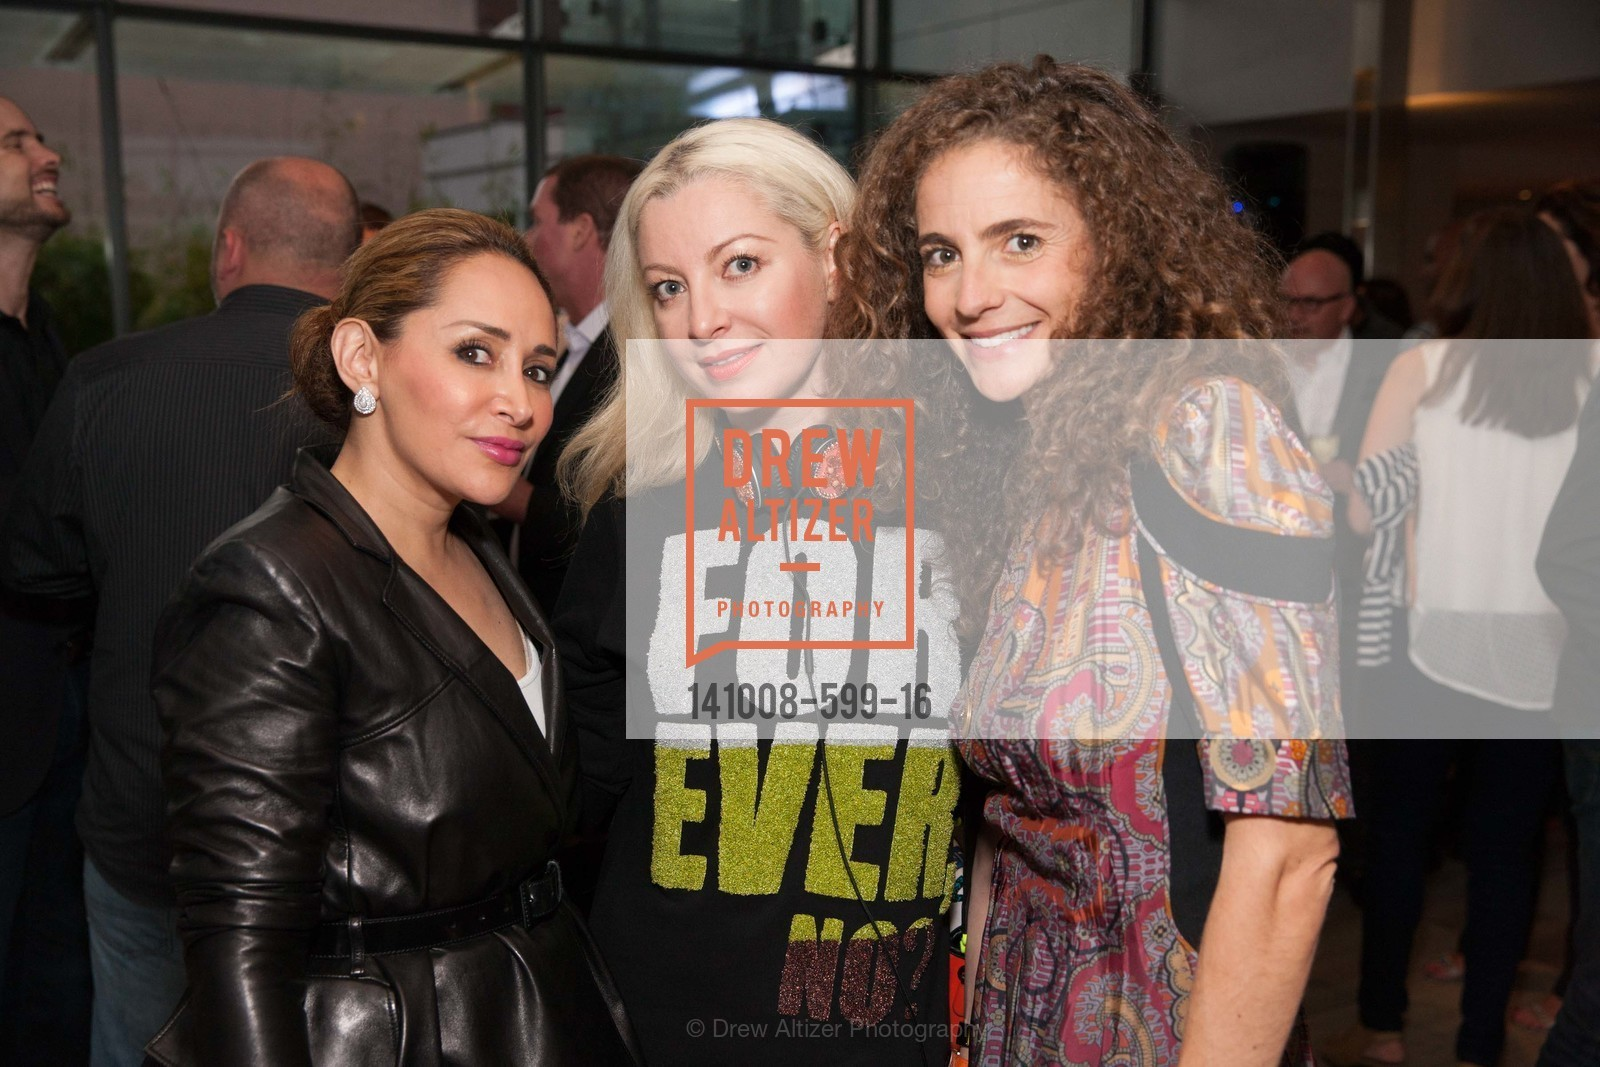 Brenda Zarate, Sonya Molodetskaya, Monica Savini, 7x7 HOT 20, US, October 9th, 2014,Drew Altizer, Drew Altizer Photography, full-service agency, private events, San Francisco photographer, photographer california